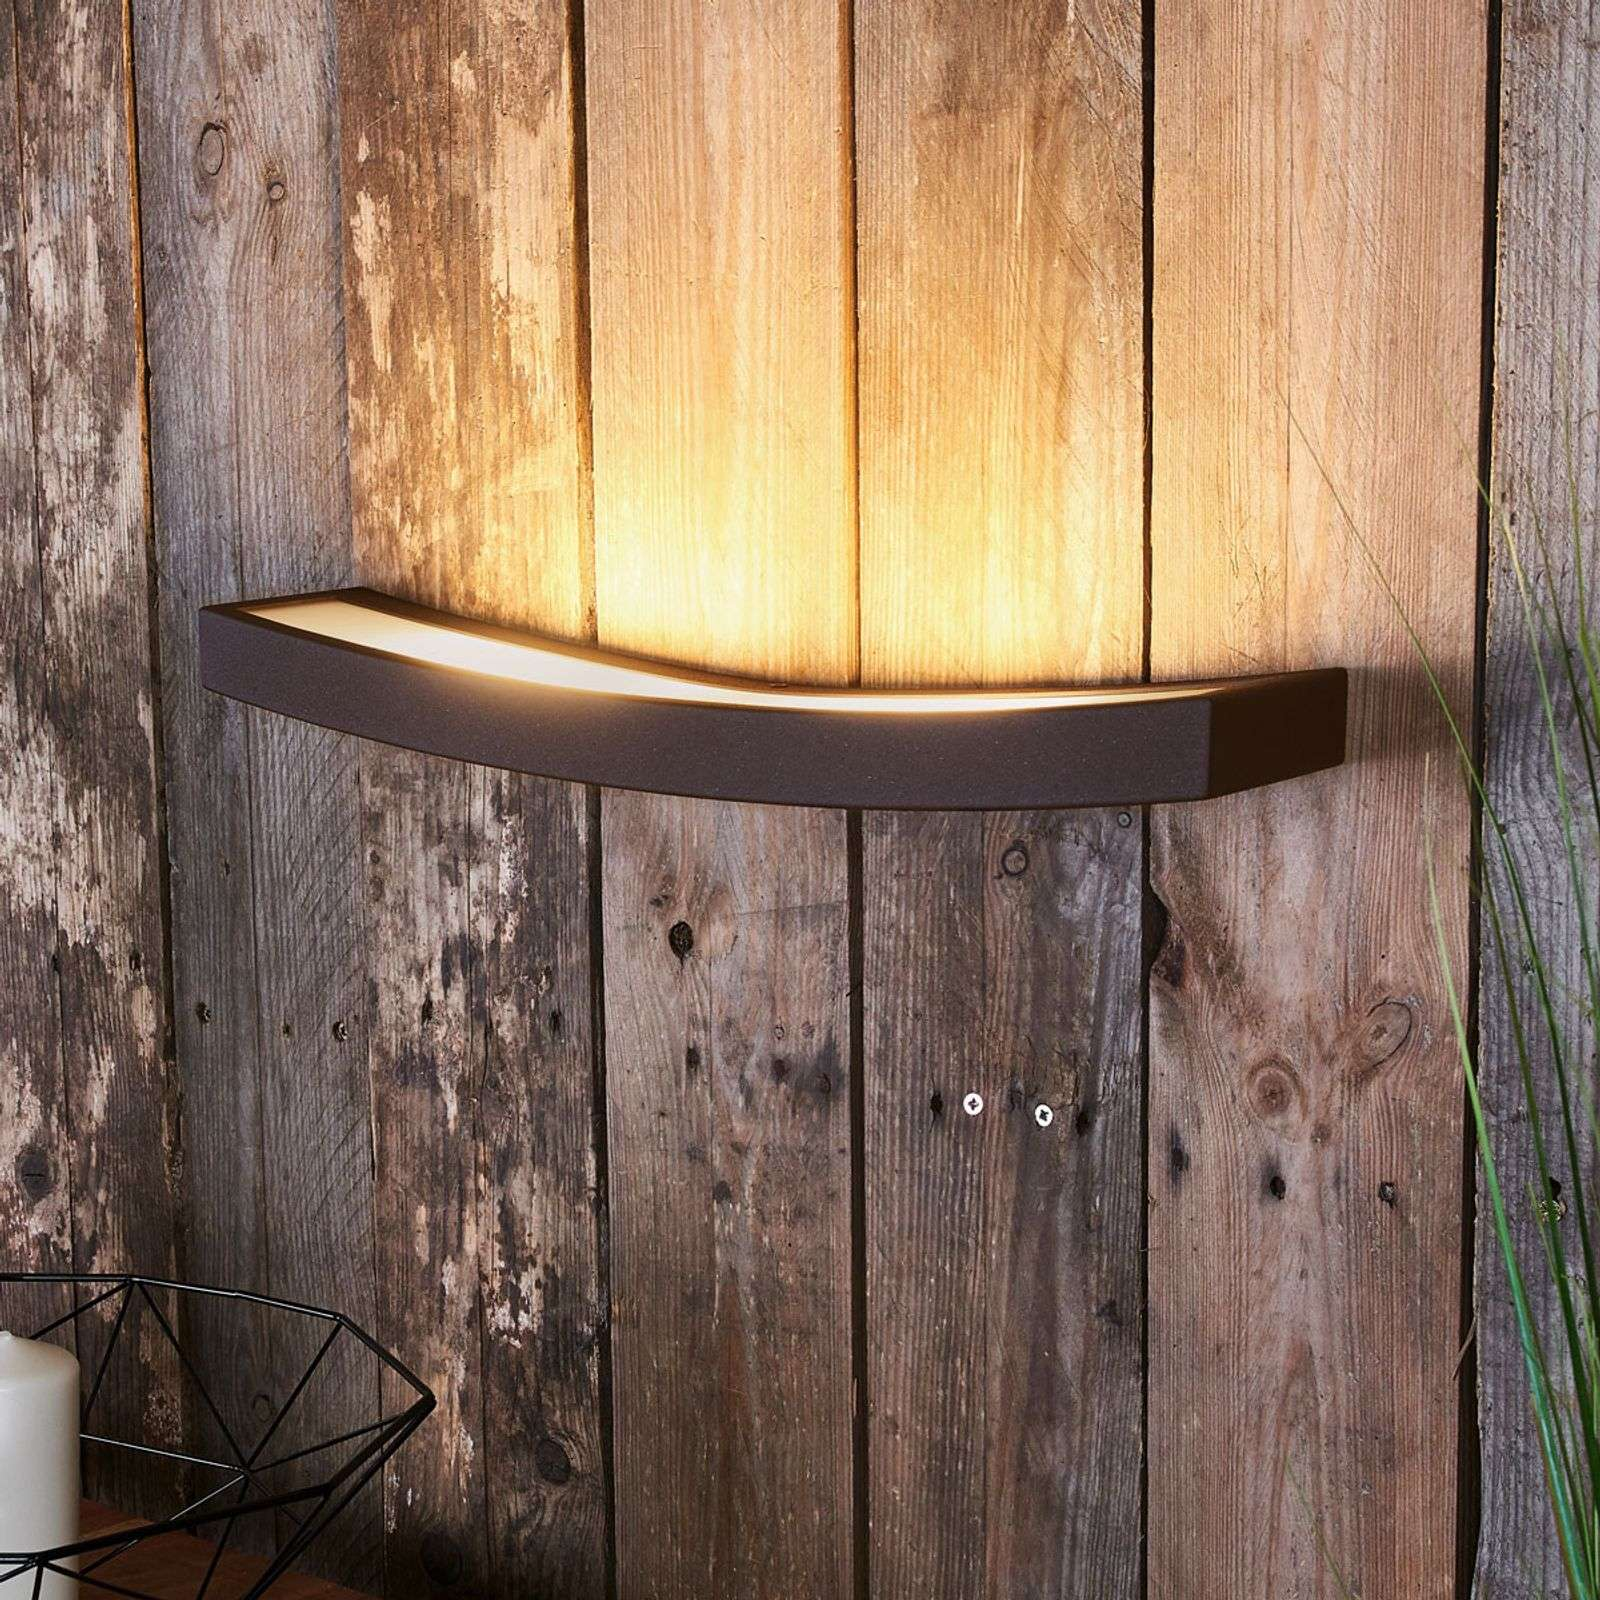 Lámpara LED de pared Dolce, luz indirecta, 50 cm